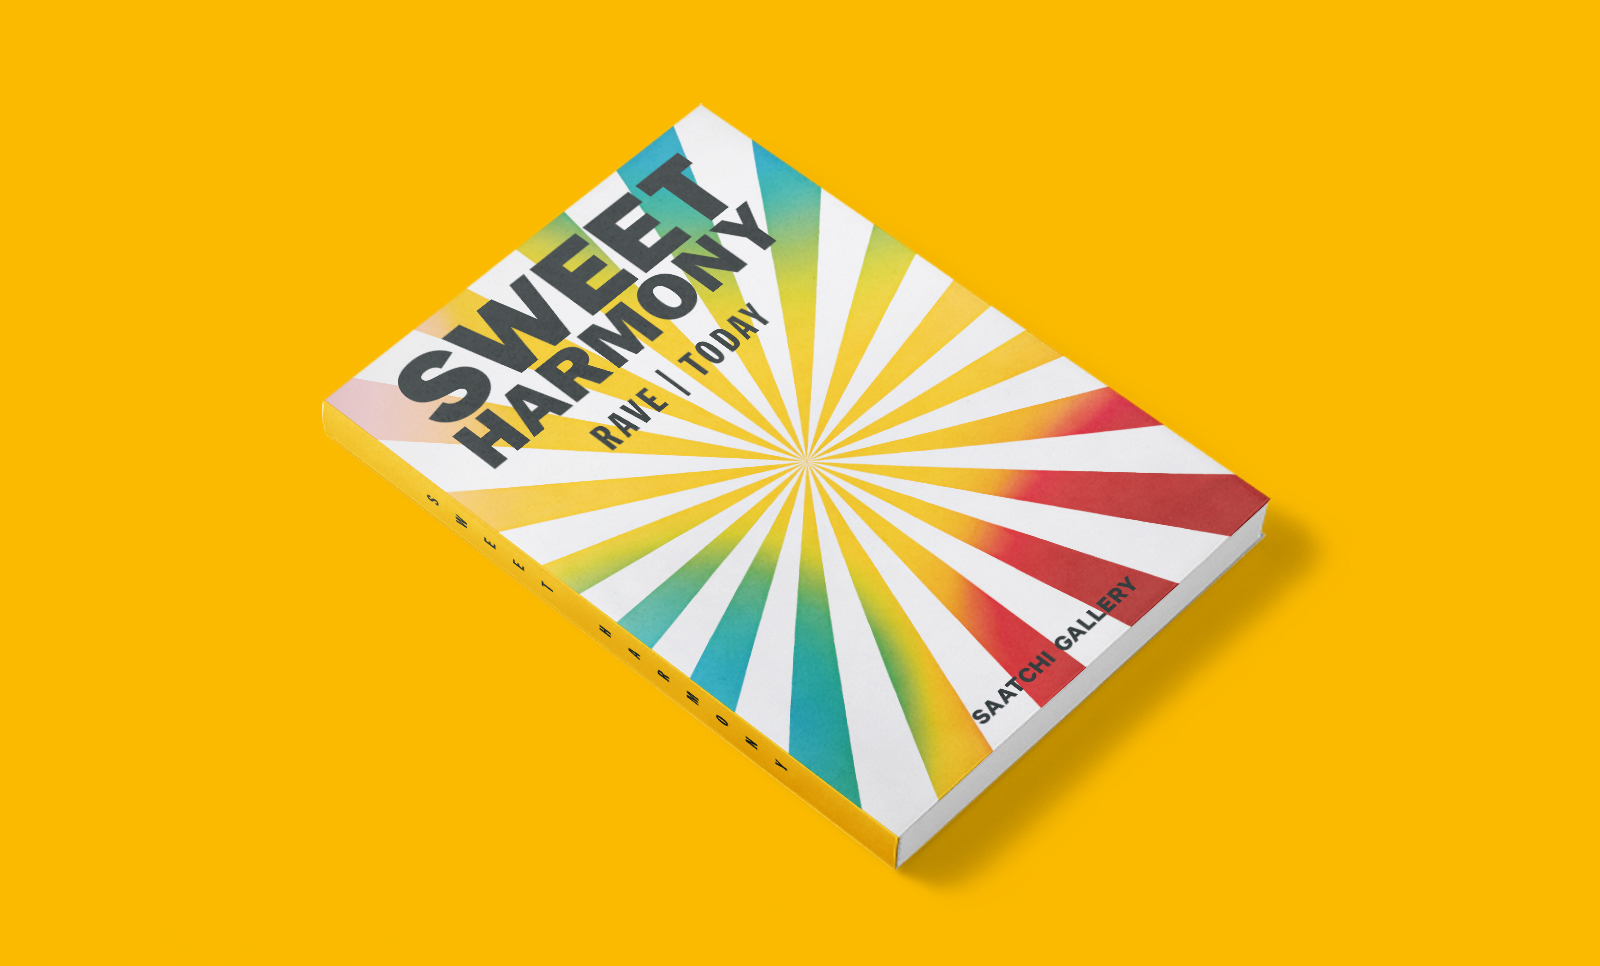 Sweet-Harmony-Saatchi-Gallery-Rave-Today-Book-Cover-Pavement-Licker.jpg